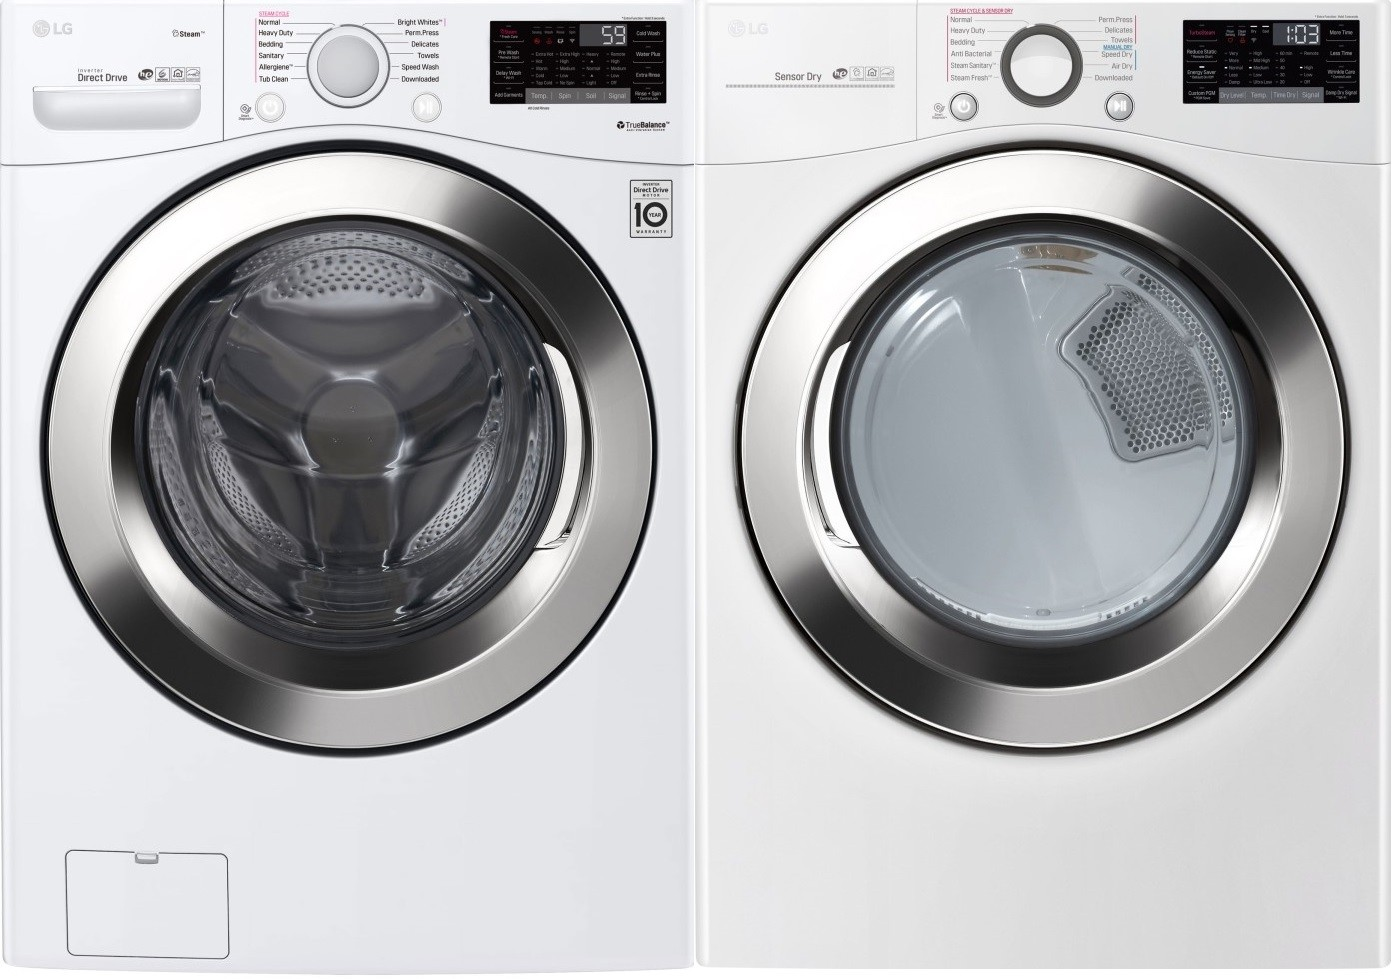 Washer And Dryer Calgary Lg Side By Side Washer Dryer Set